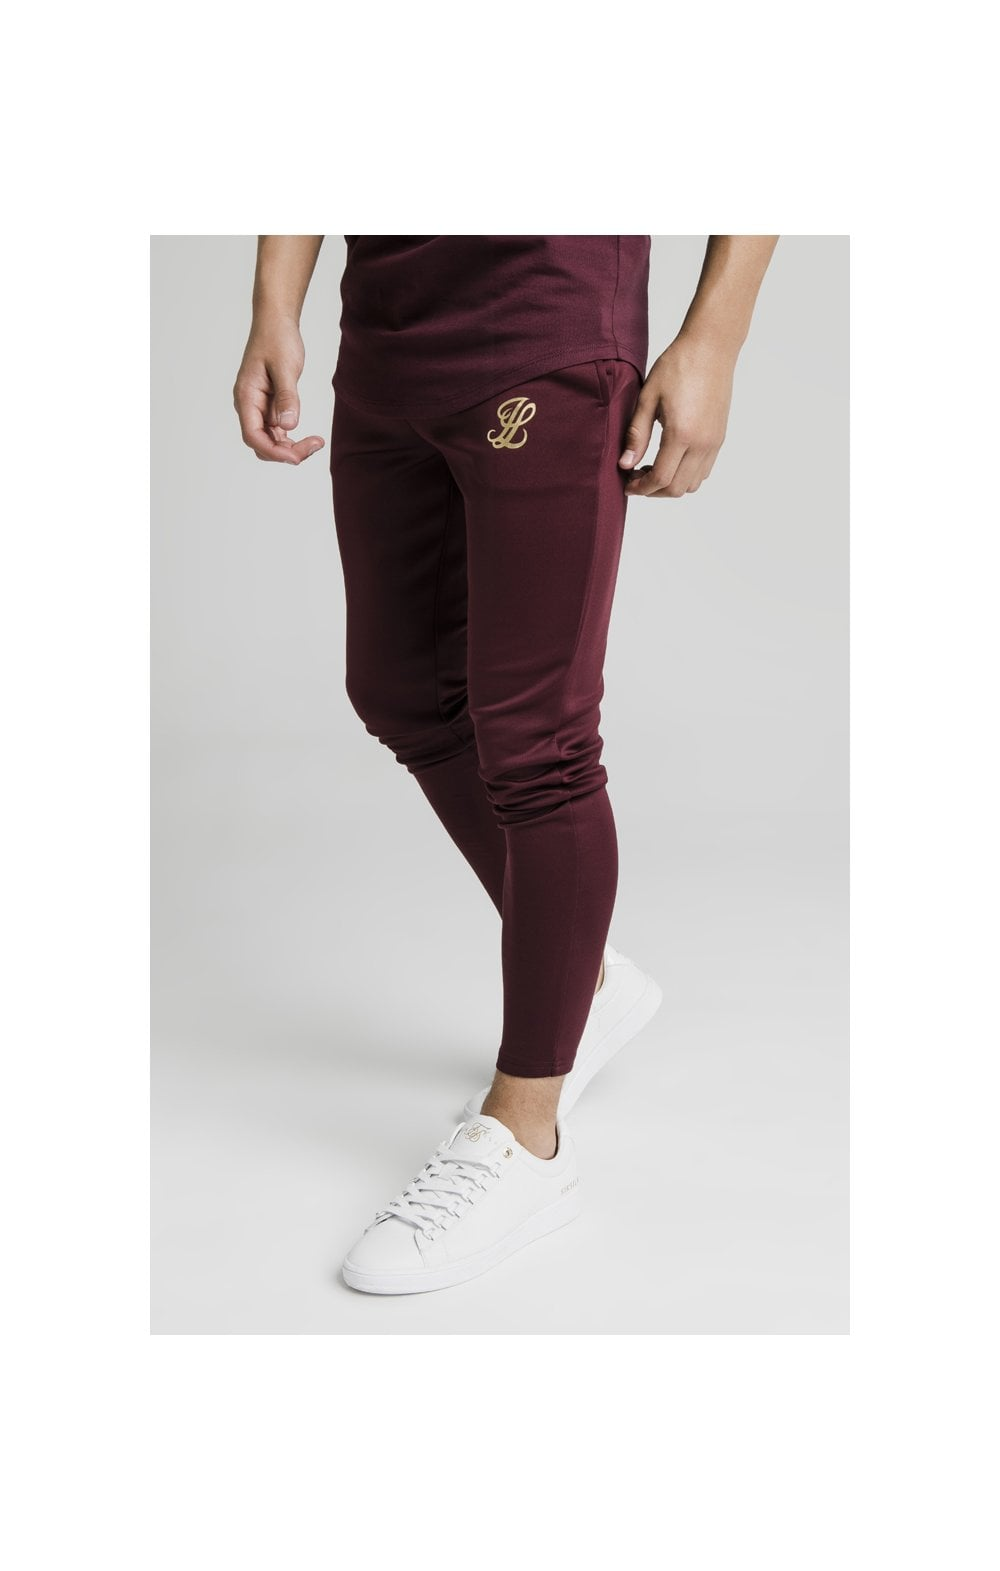 Illusive London Agility Track Pants - Burgundy